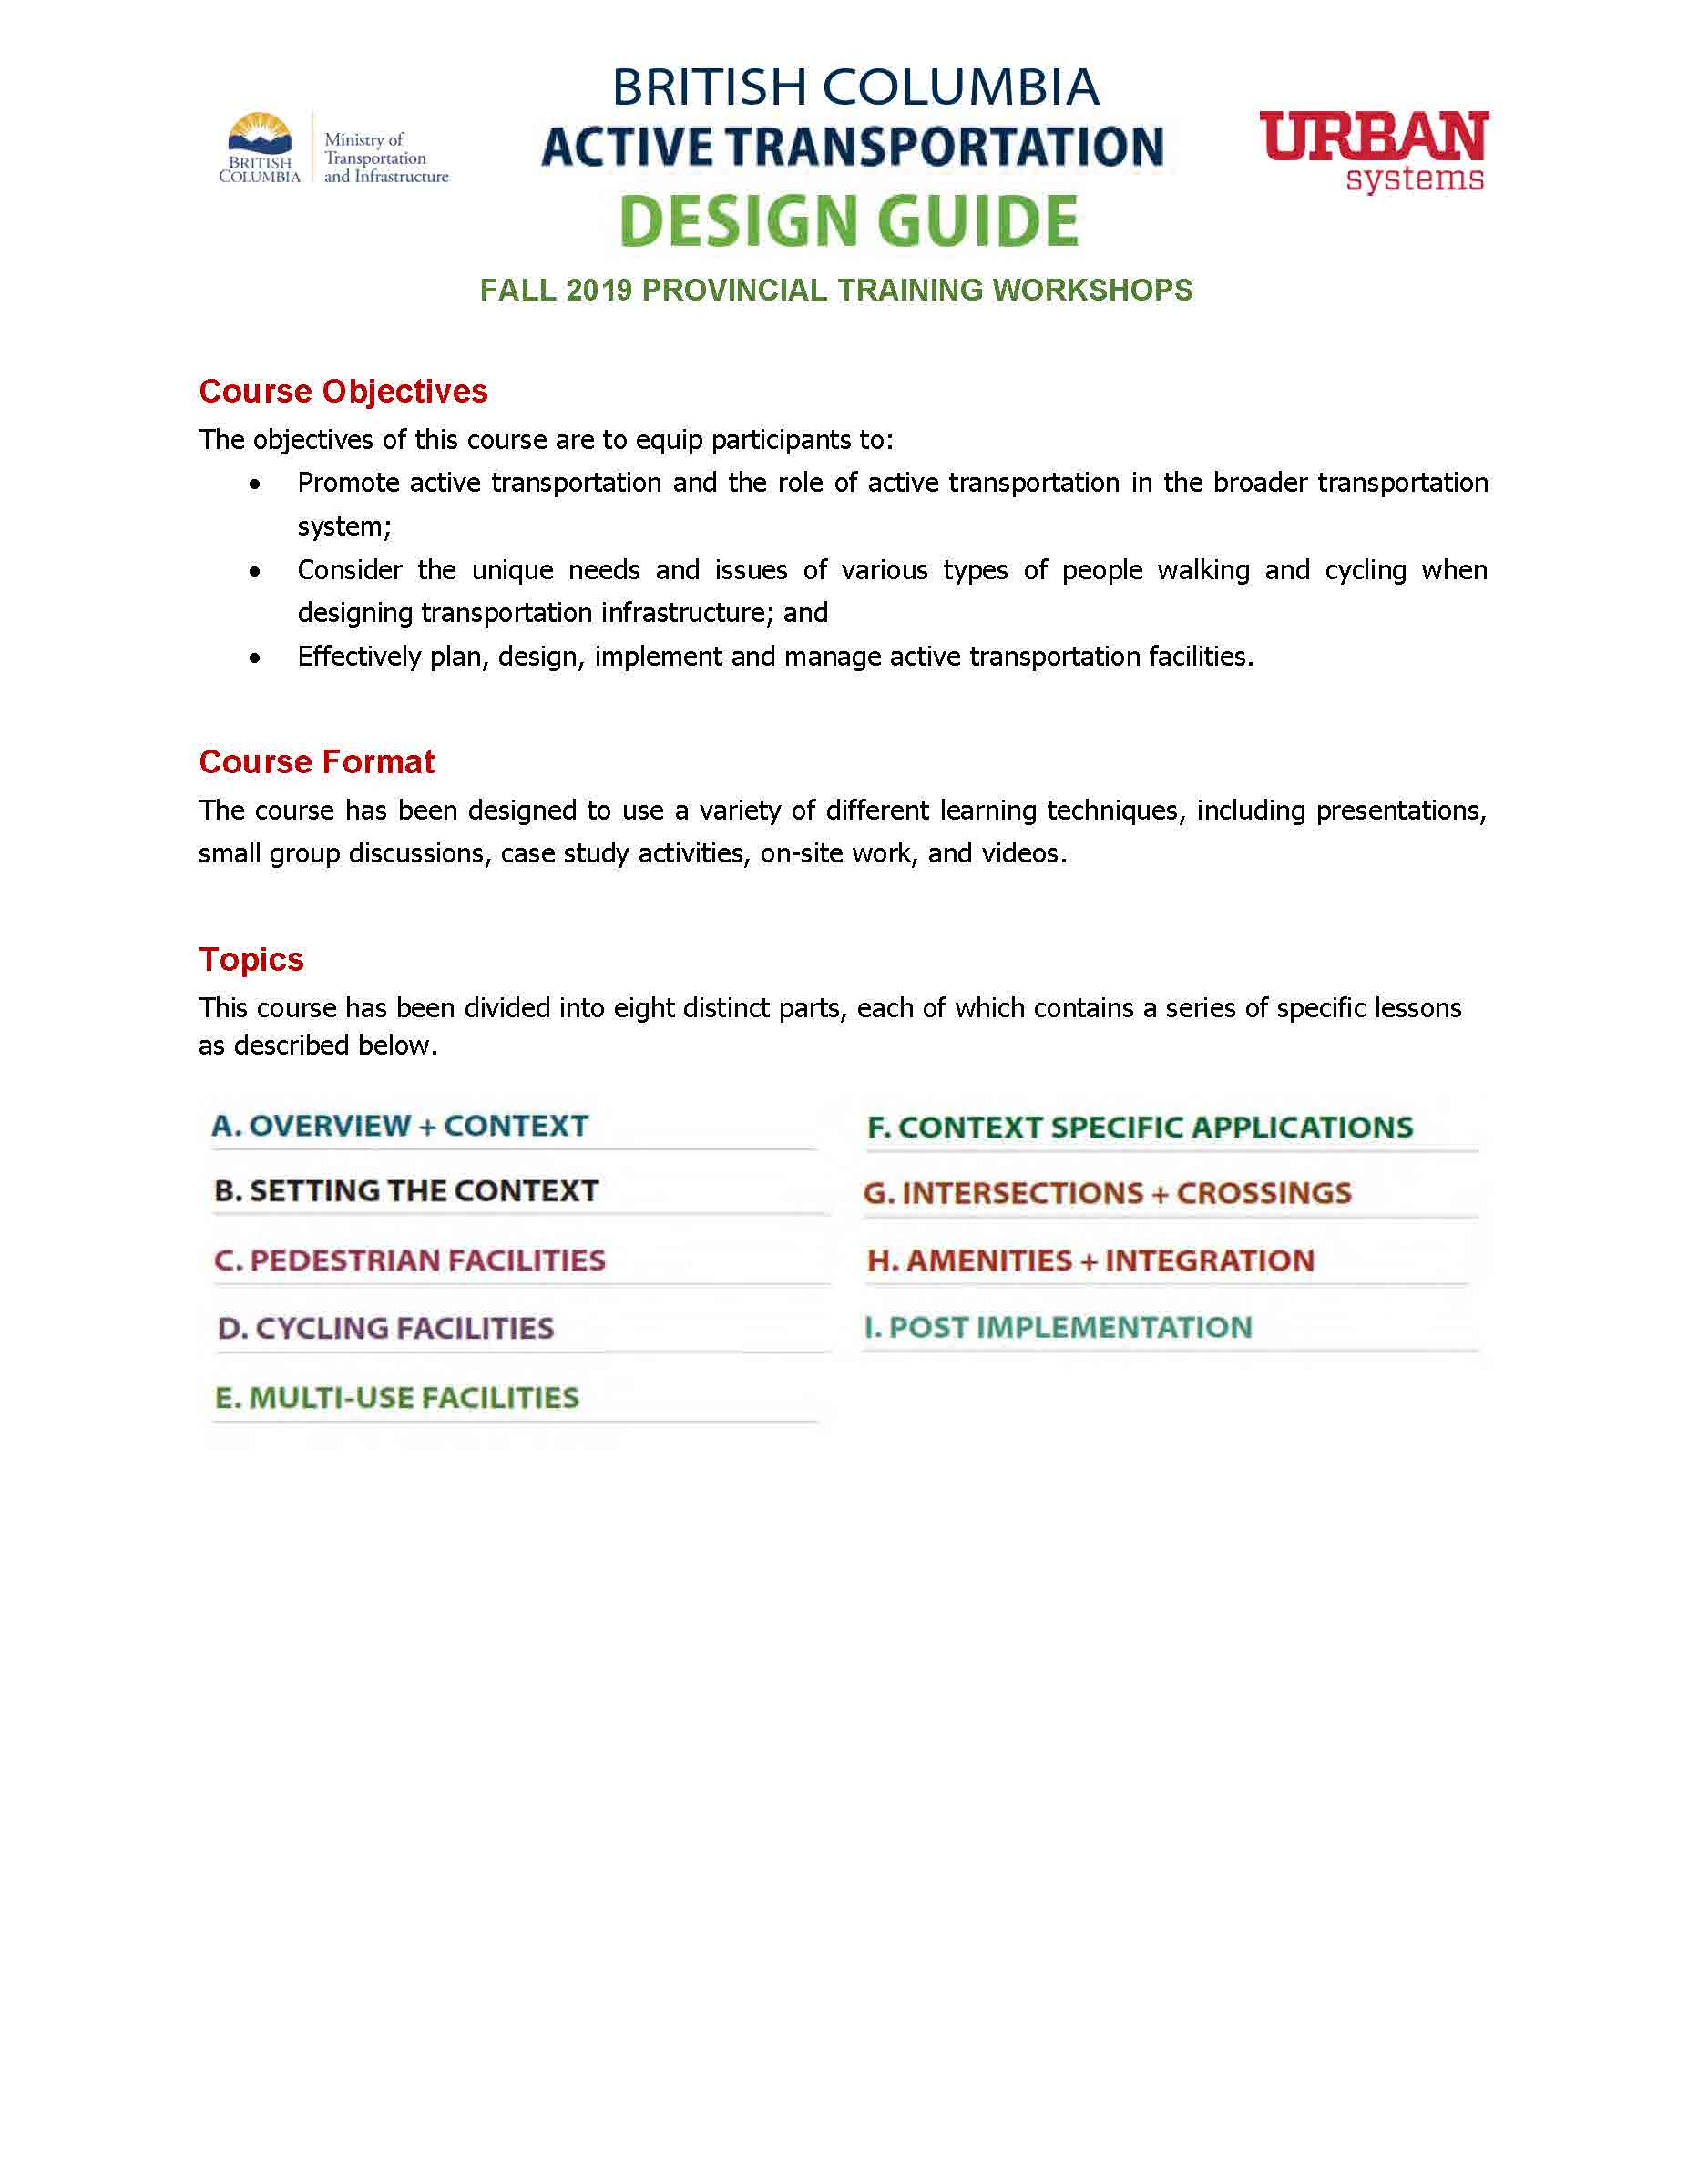 Course Outline - Page 2